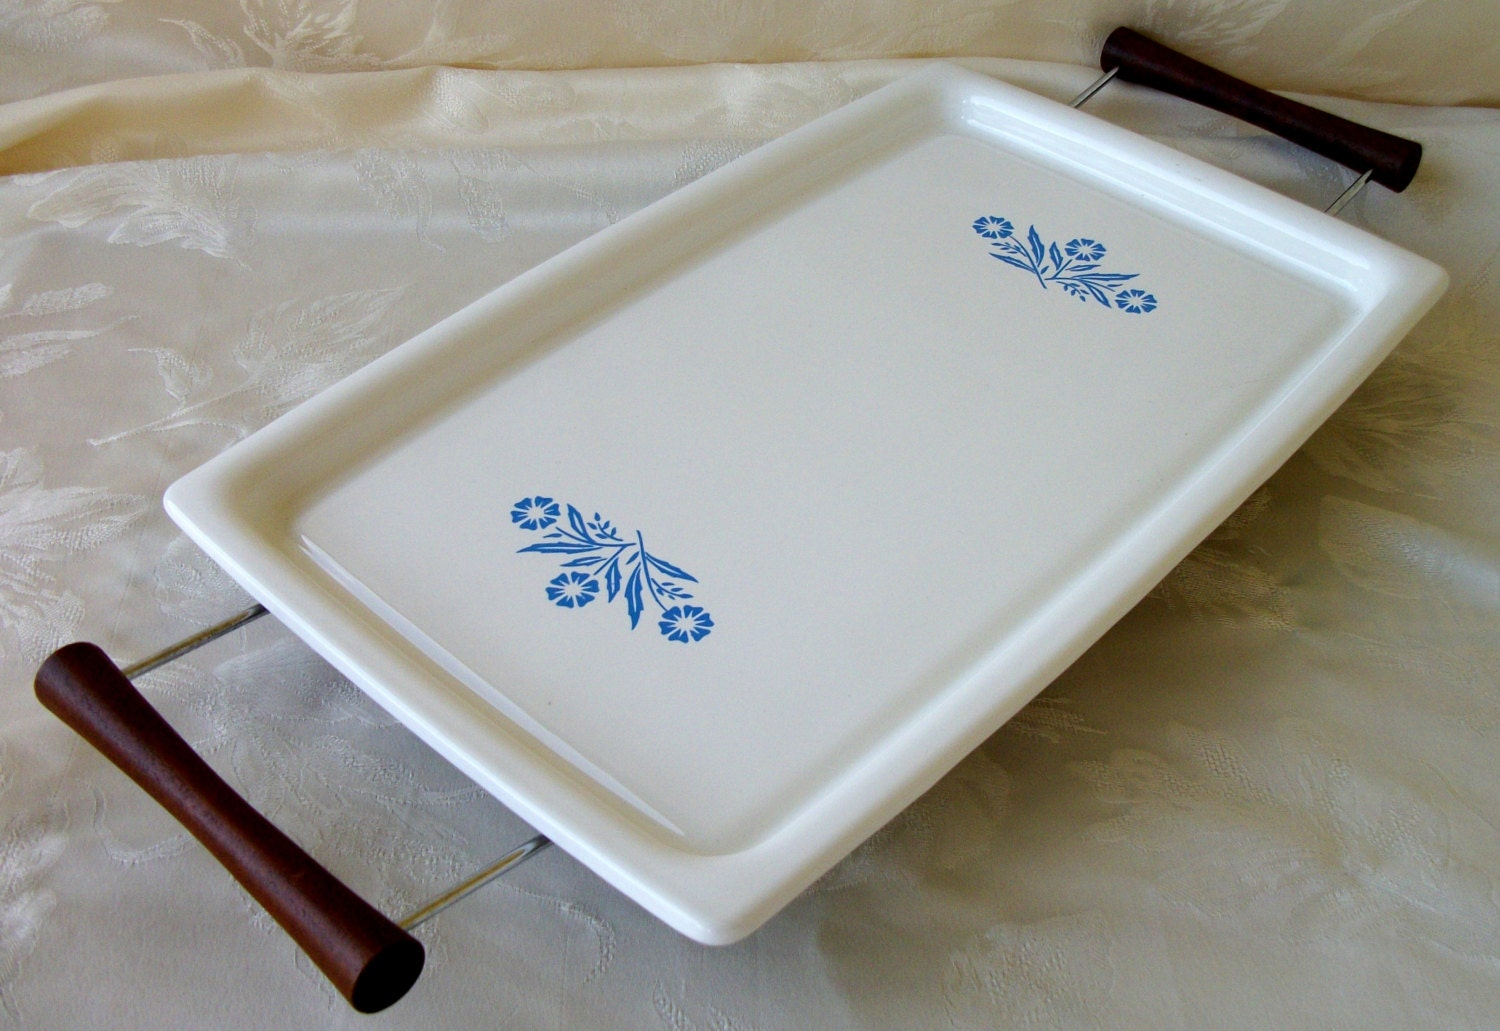 Corning Ware Broil Bake Tray With Cradle Blue Cornflower